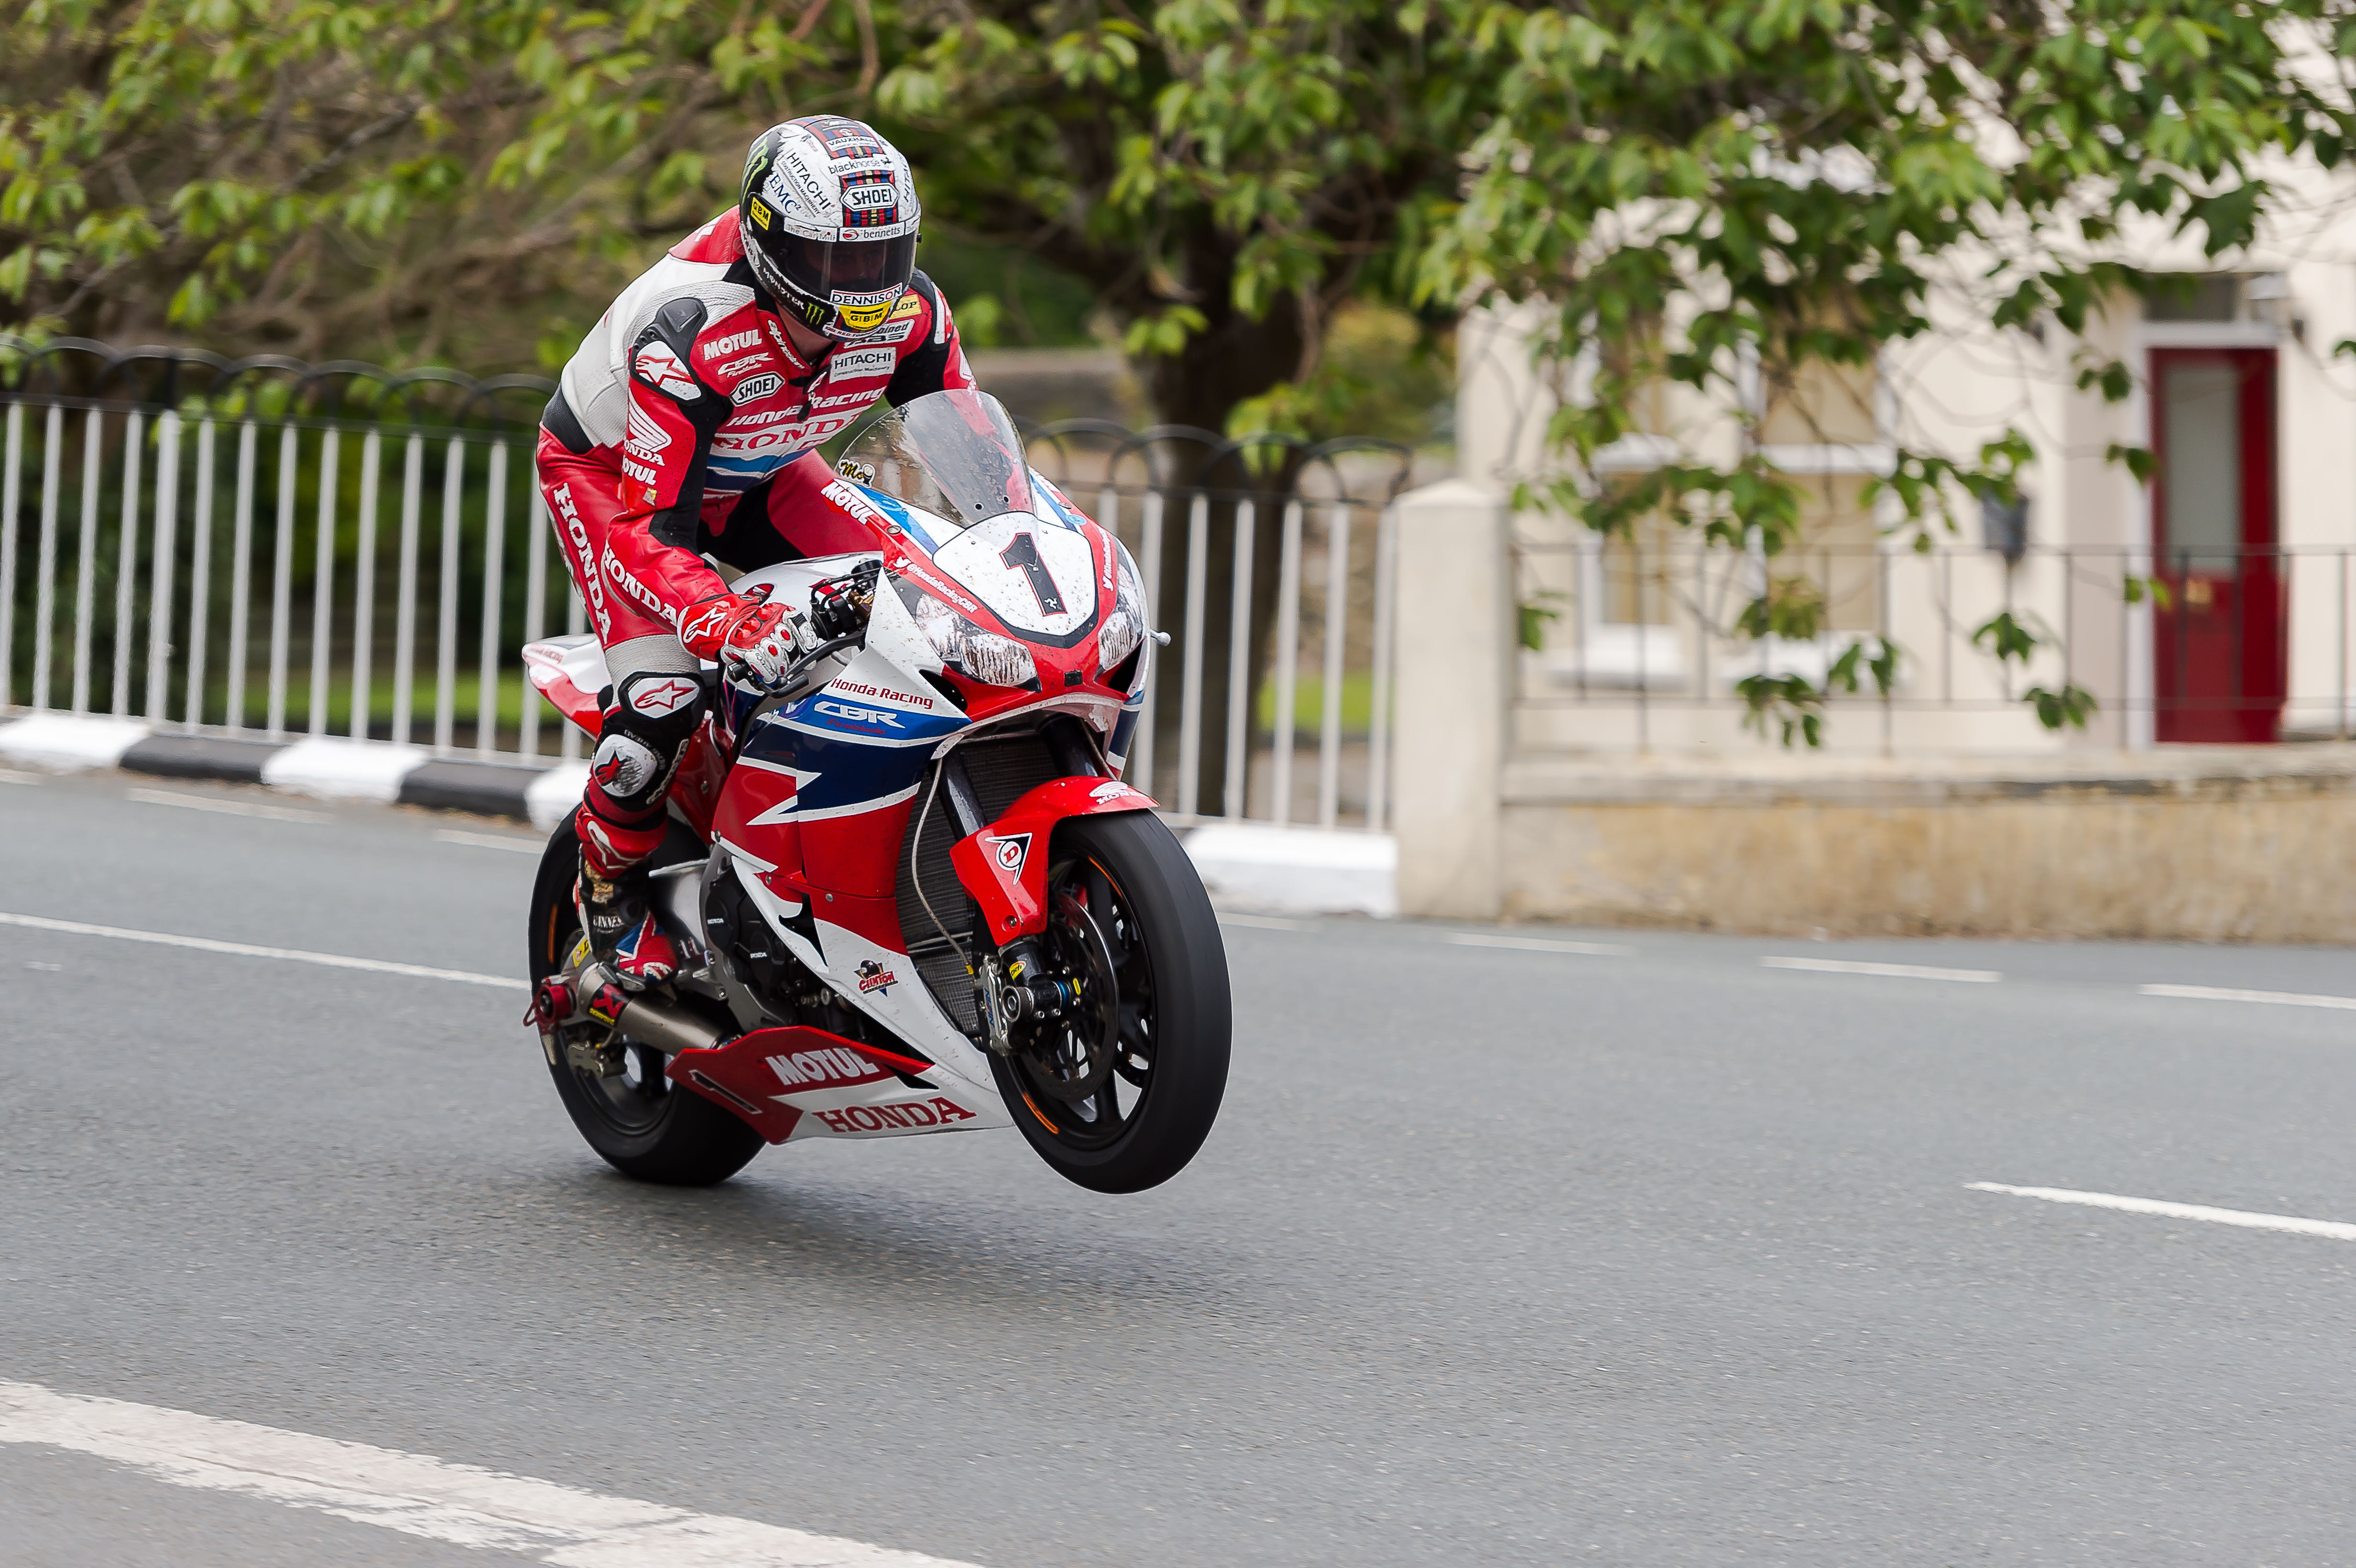 John McGuinness fined for taking daughter out of school for TT